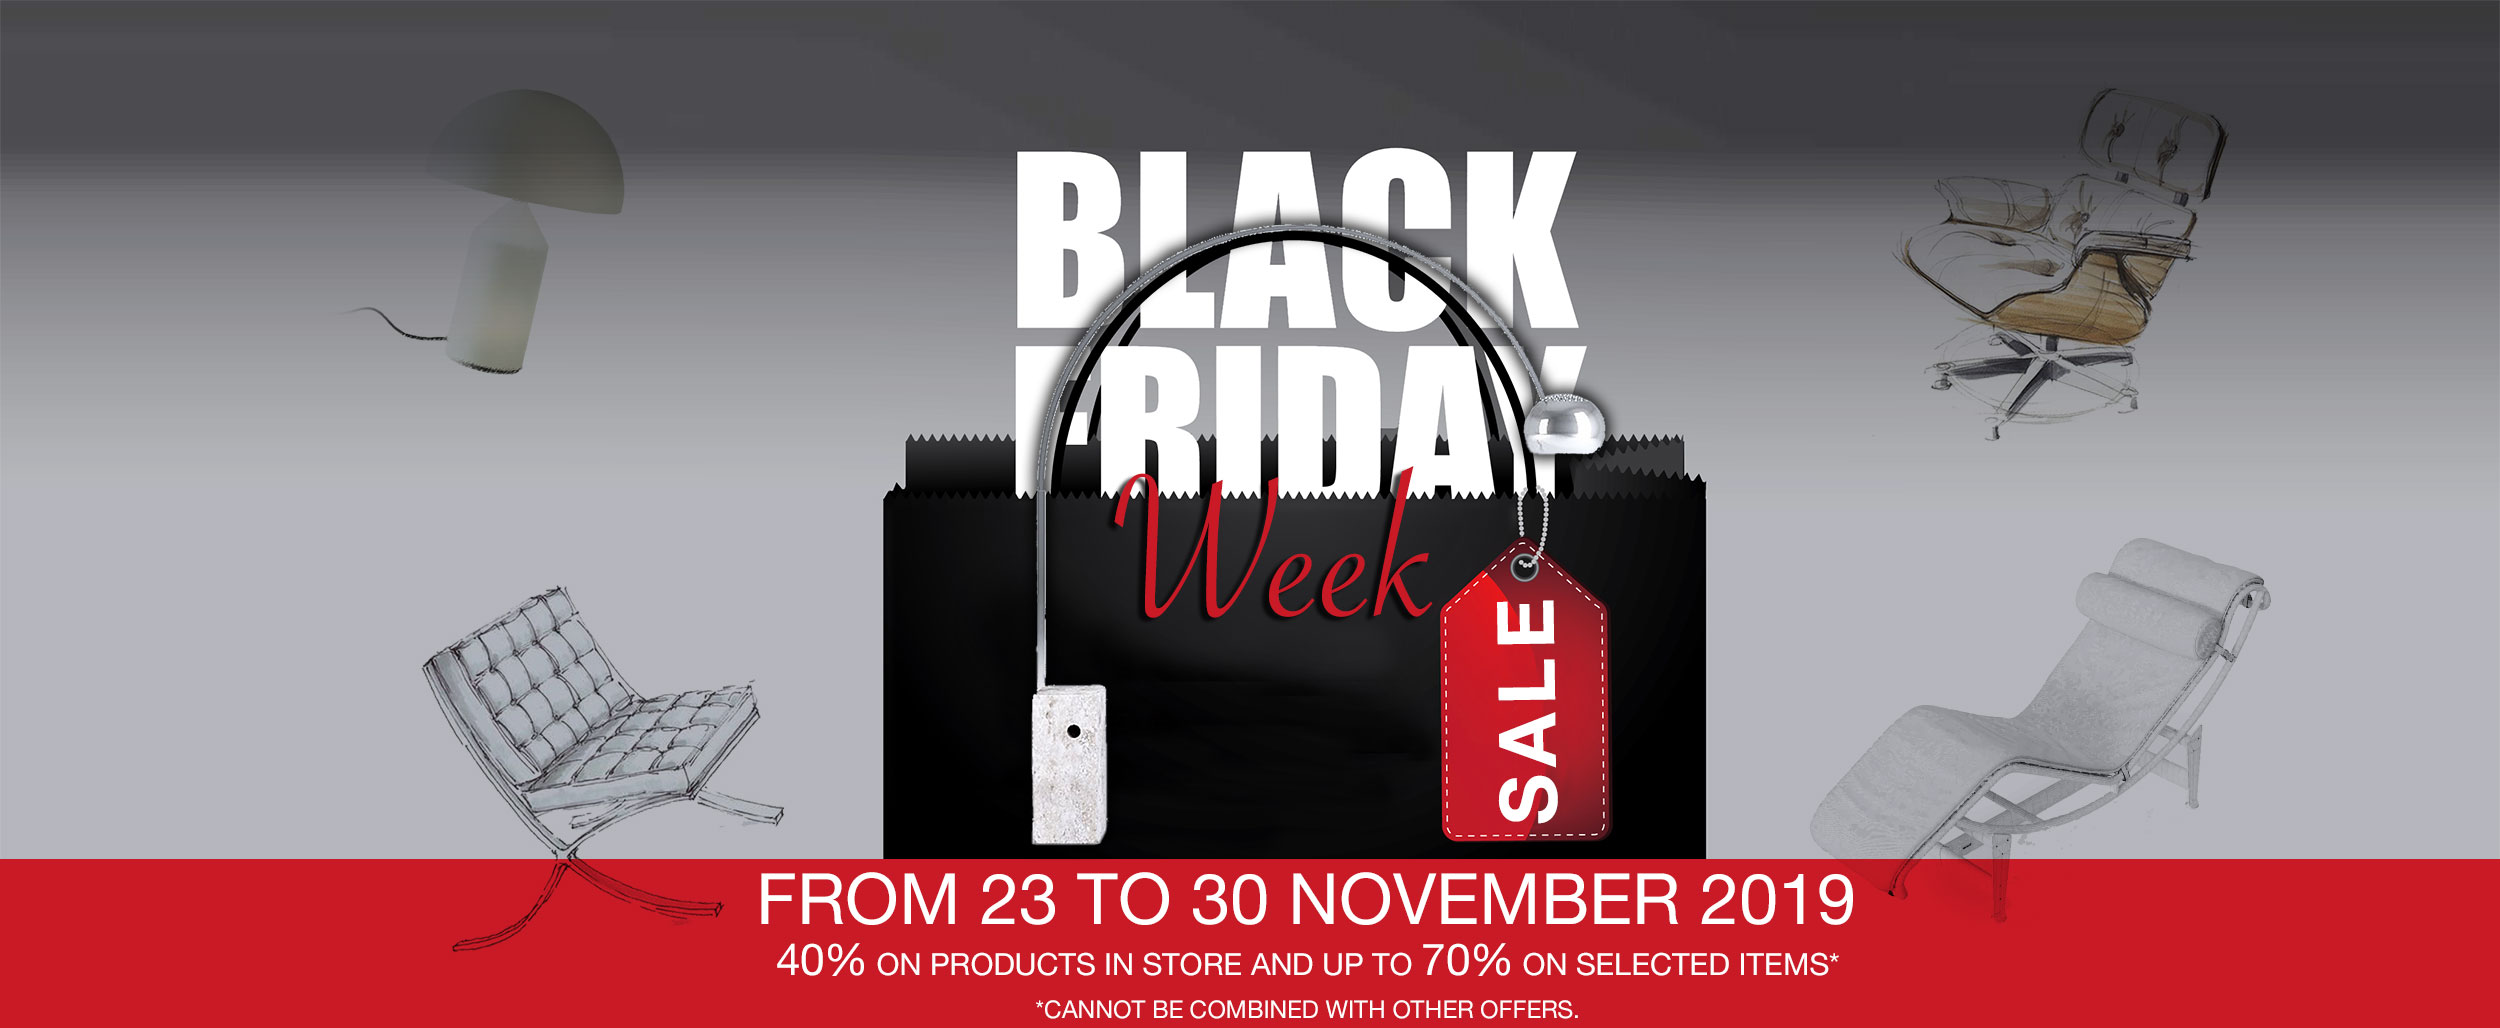 Black Friday Gerosa Design